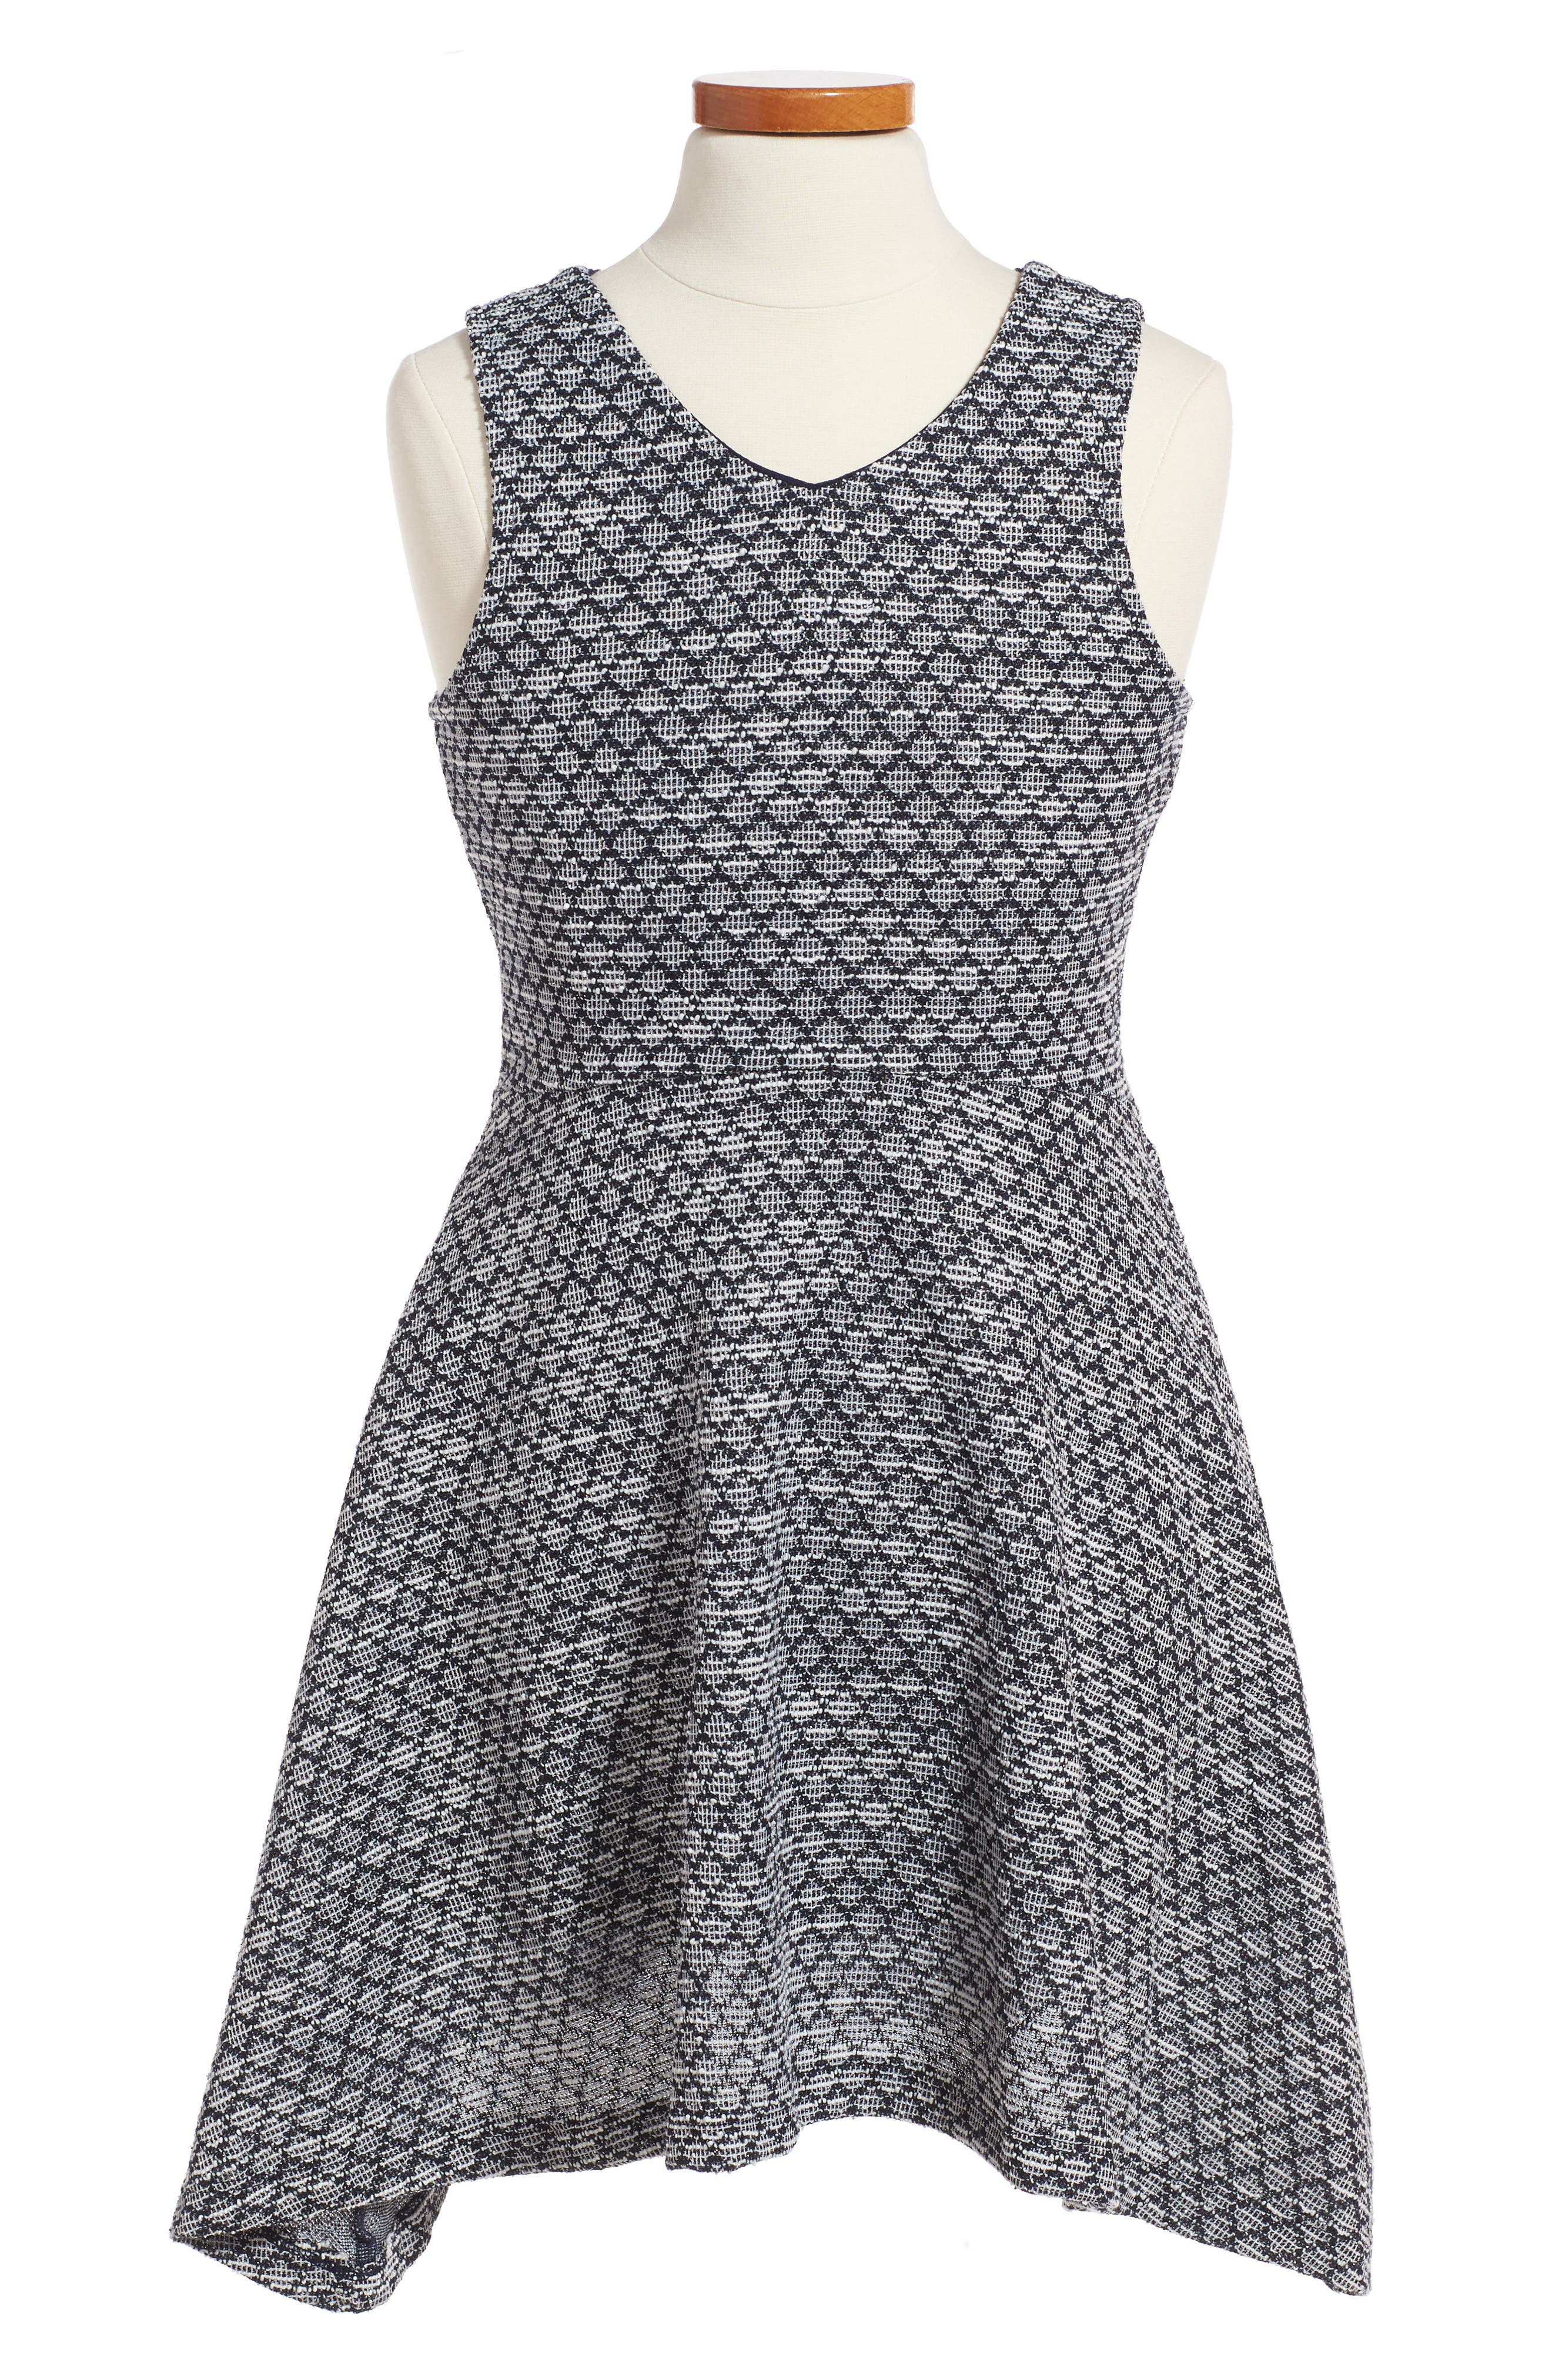 Elisa B Lolita Sleeveless Skater Dress (Big Girls)